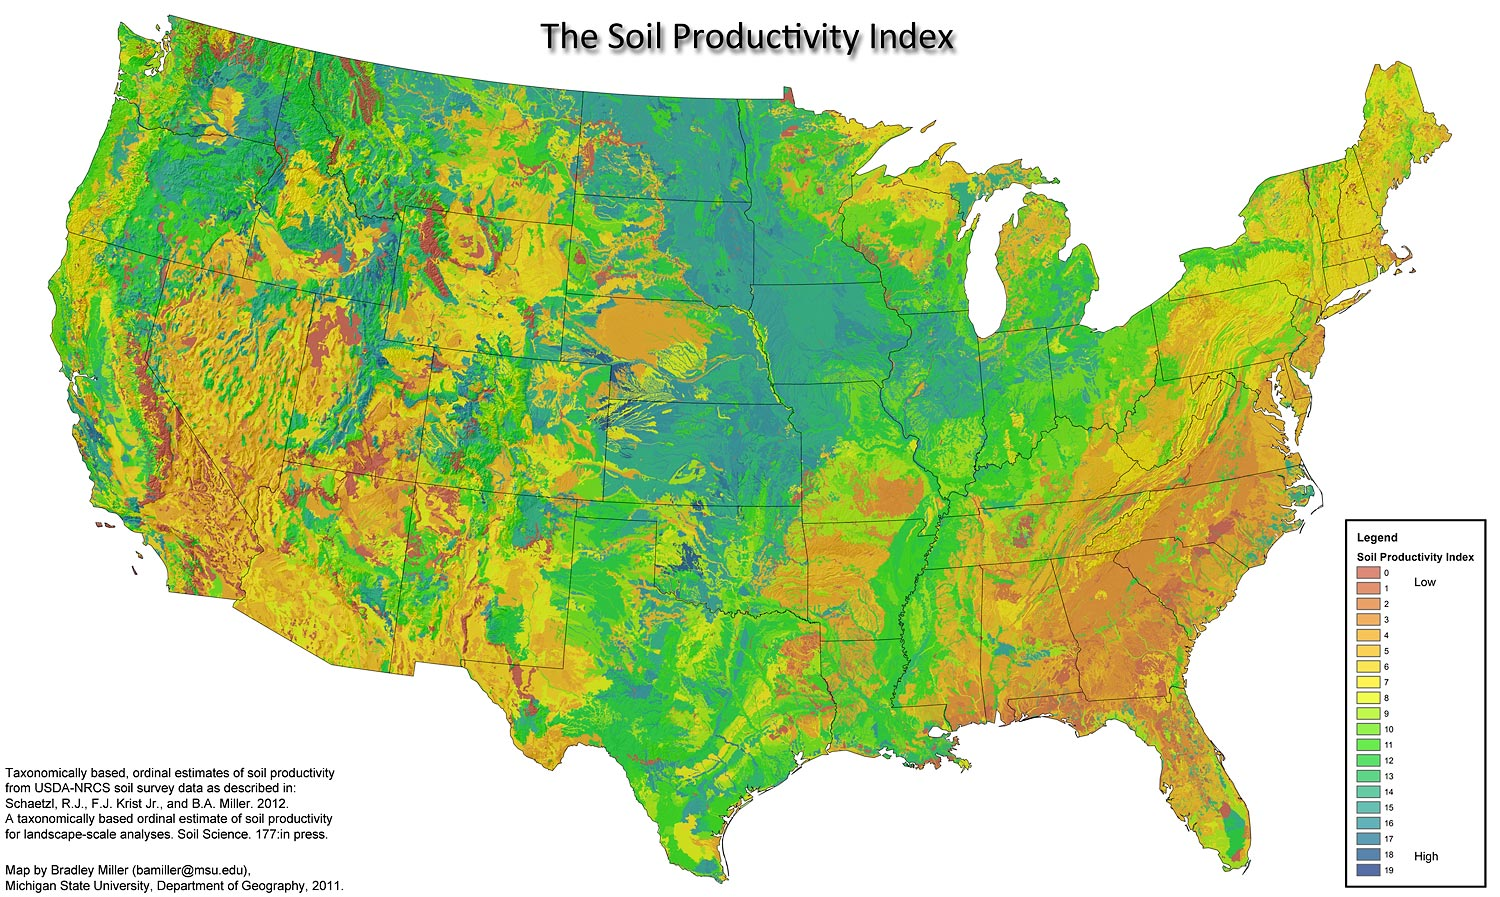 This is a map that denotes the soil productivity in the United States, using data from USDA and NRCS soil survey data. Map created by Michigan State University Department of Geology.